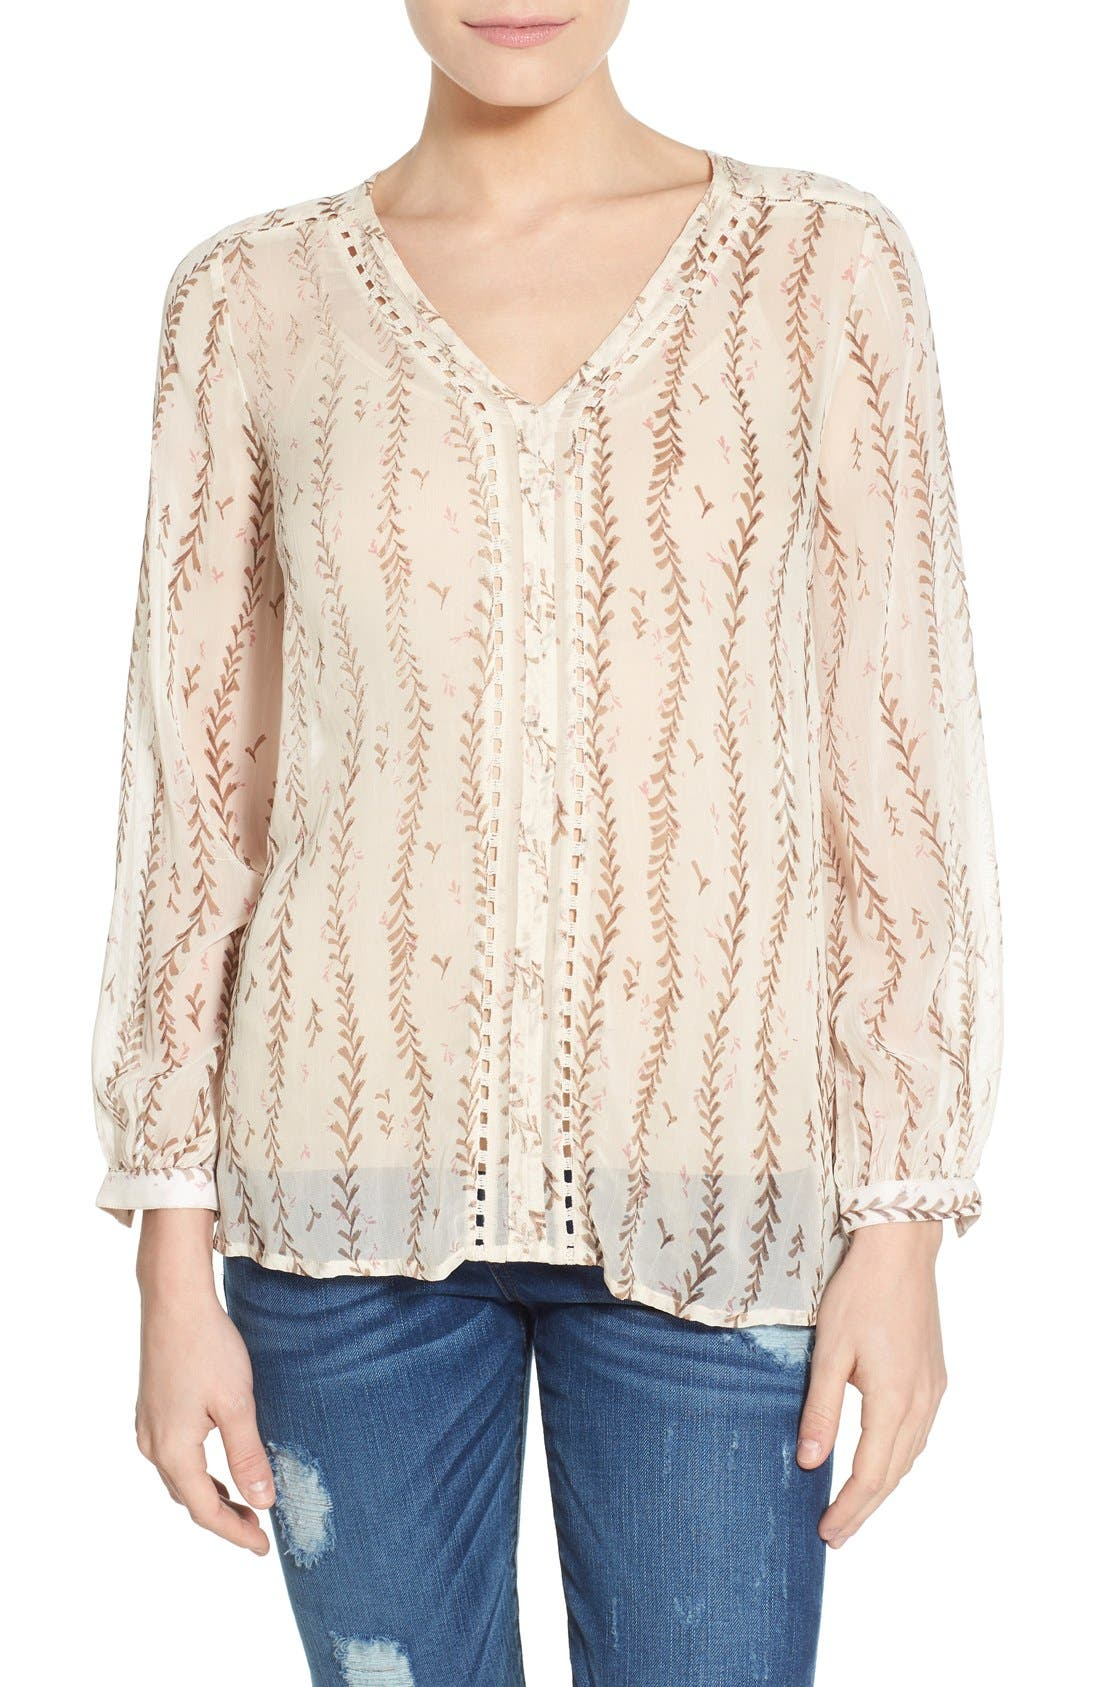 Main Image - Lucky Brand Lace Inset Vine Print Blouse